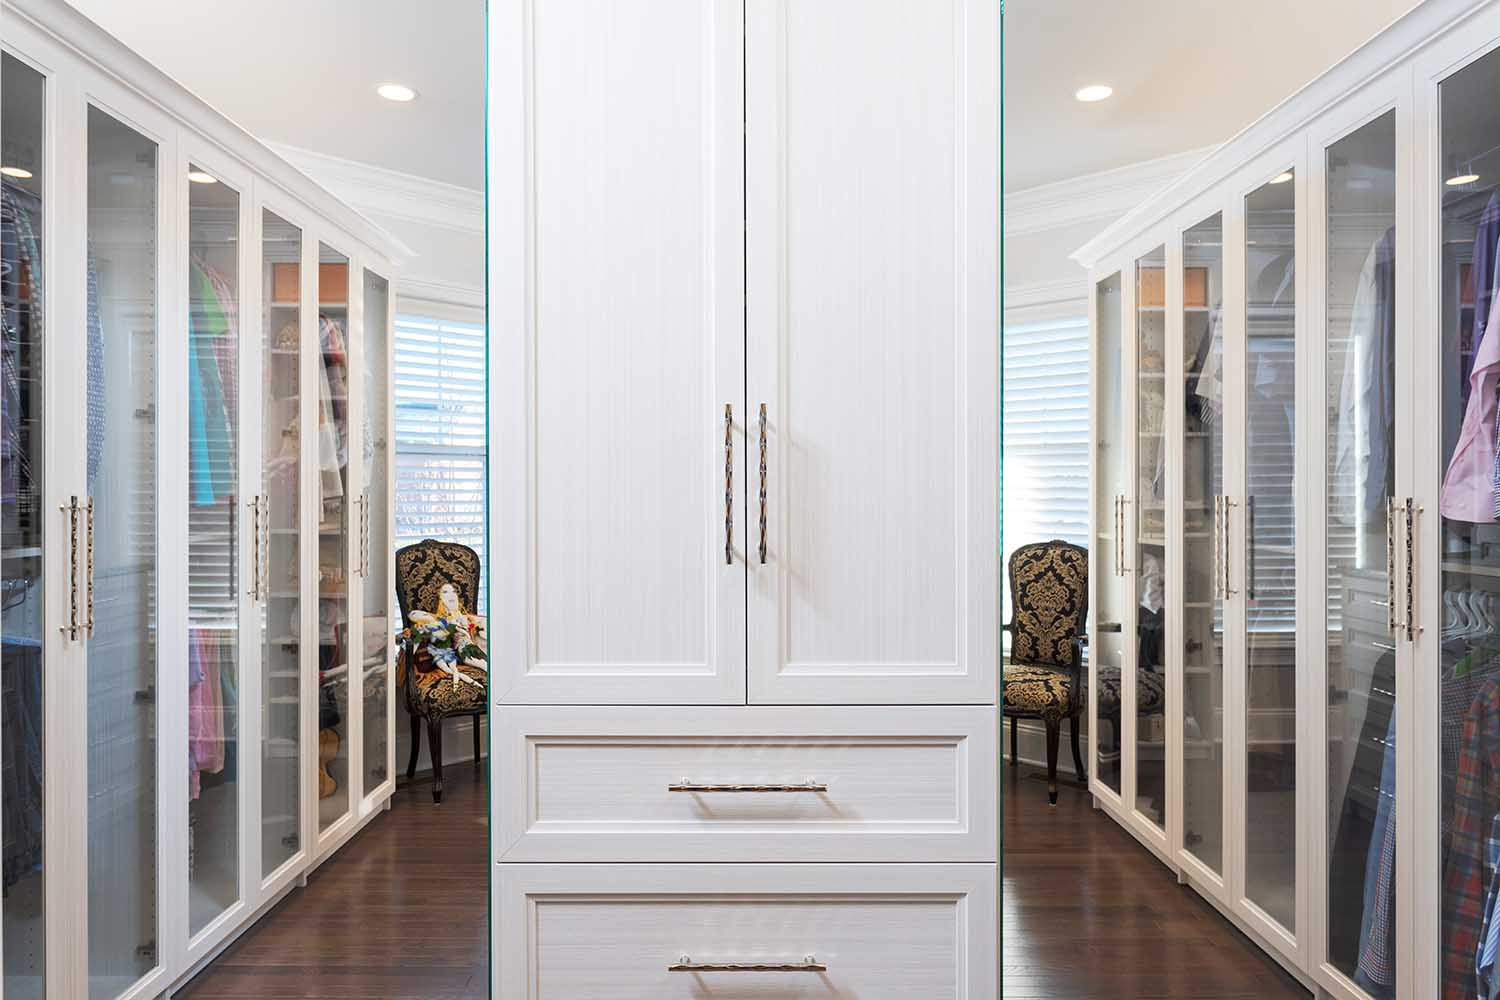 Transitional walk in wardrobe with glass doors organizing clothes on both sides